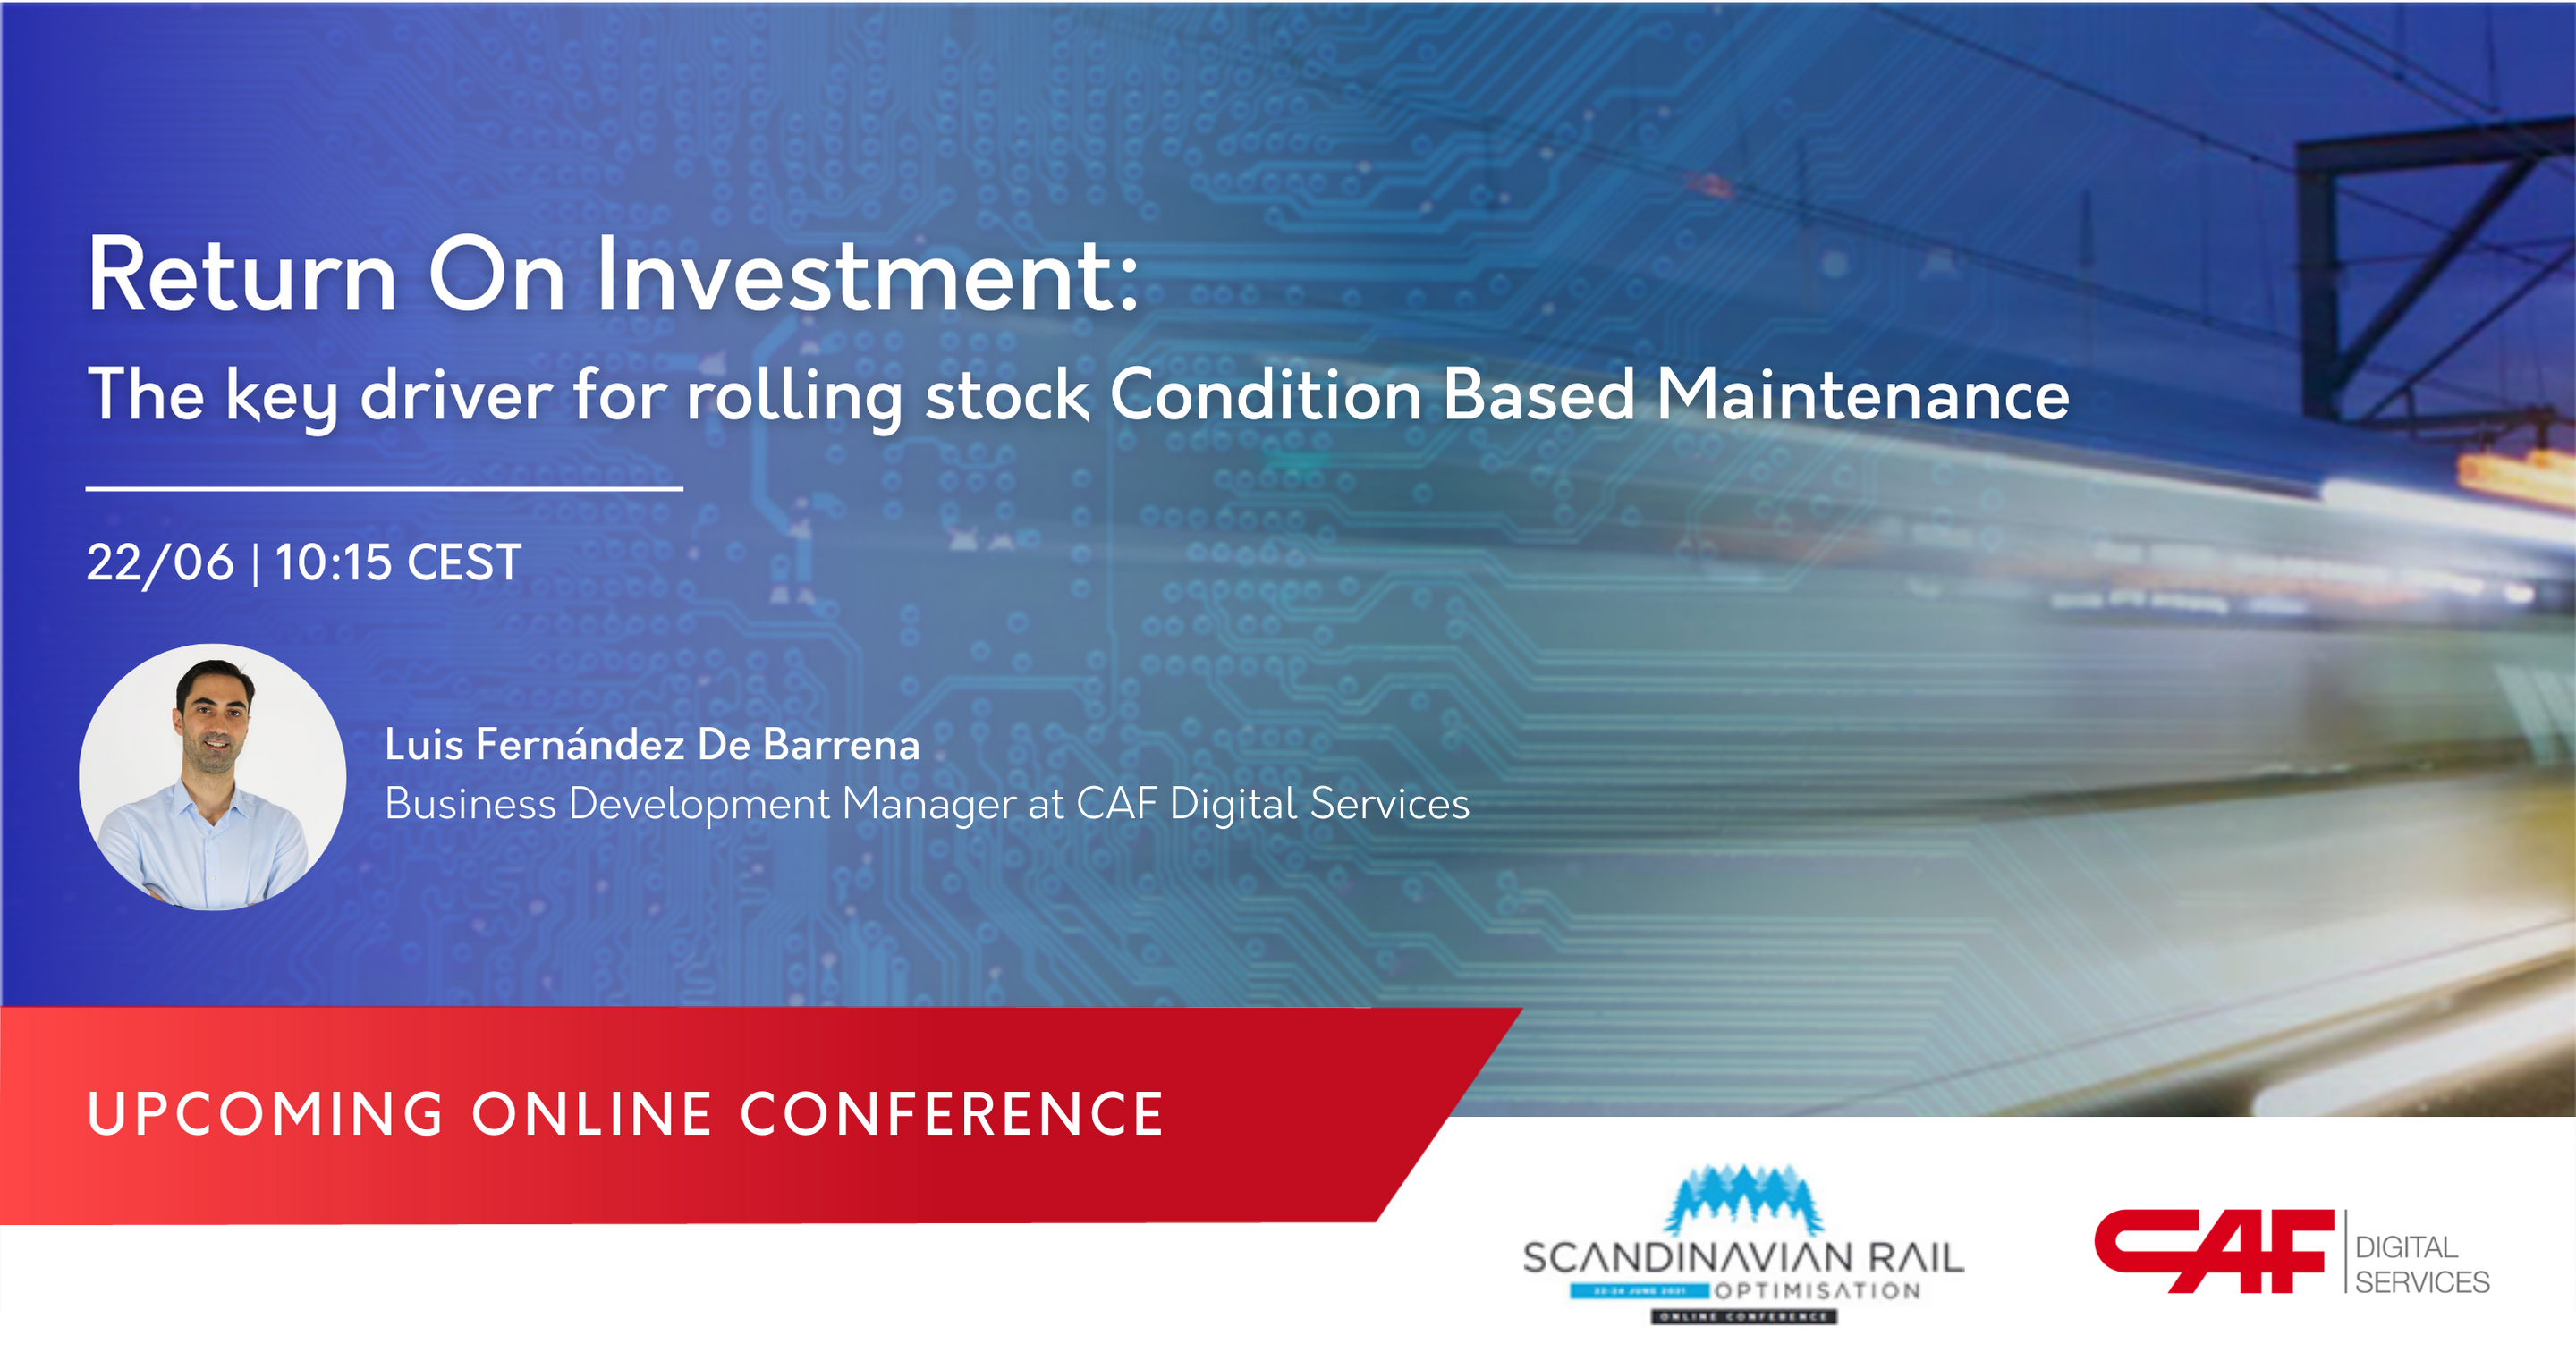 CAF is back in the Scandinavian Rail Optimisation Event to discuss about the Return On Investment: The key driver for rolling stock CBM